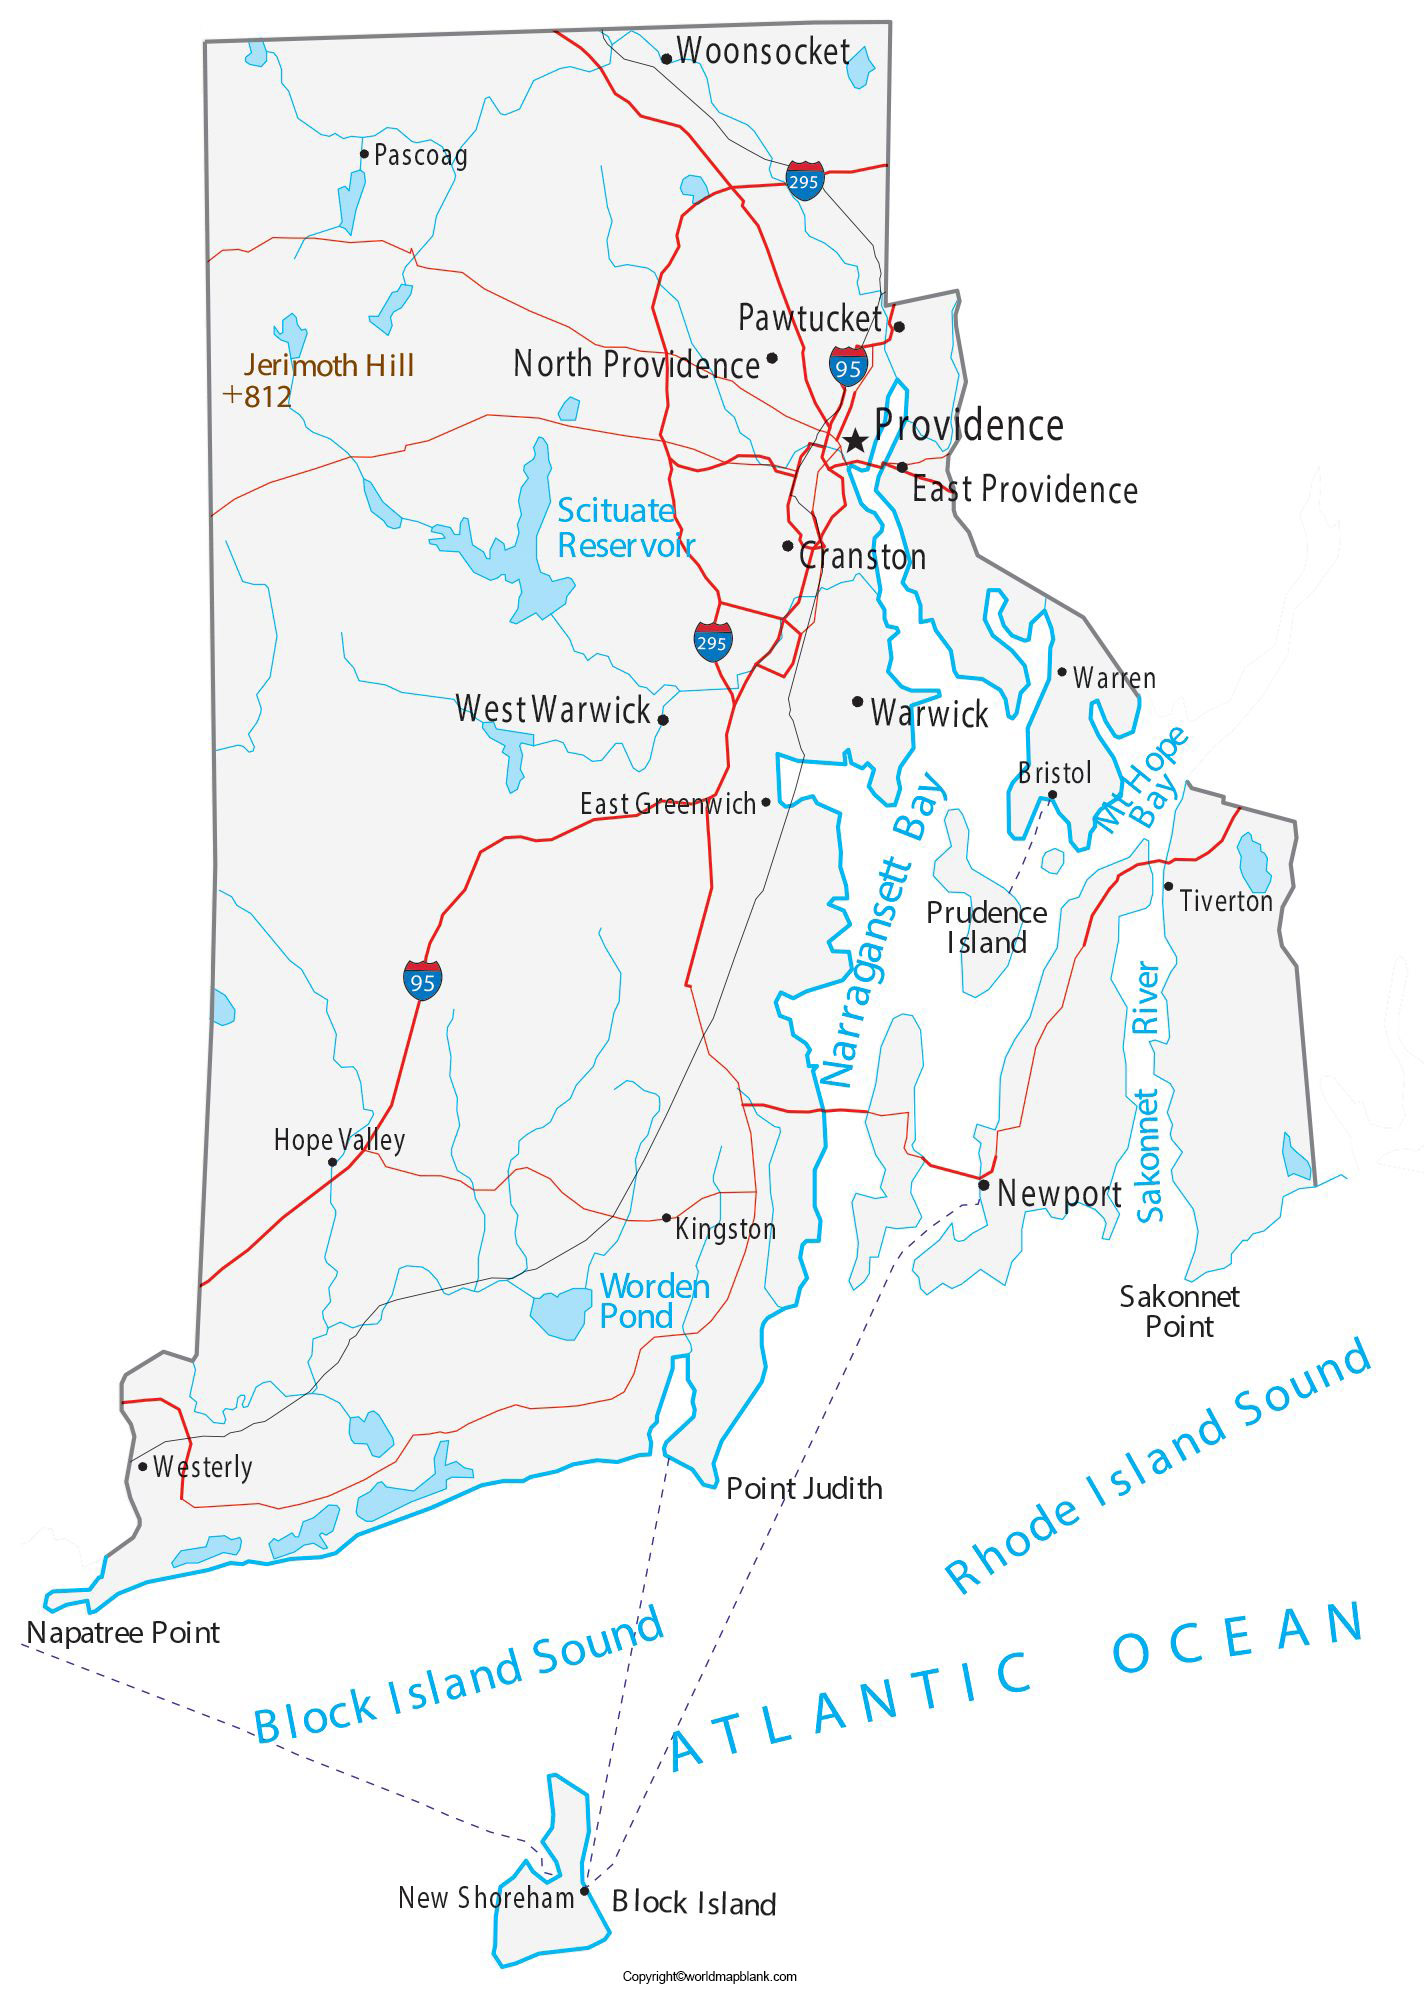 Labeled Map of Rhode Island with Cities